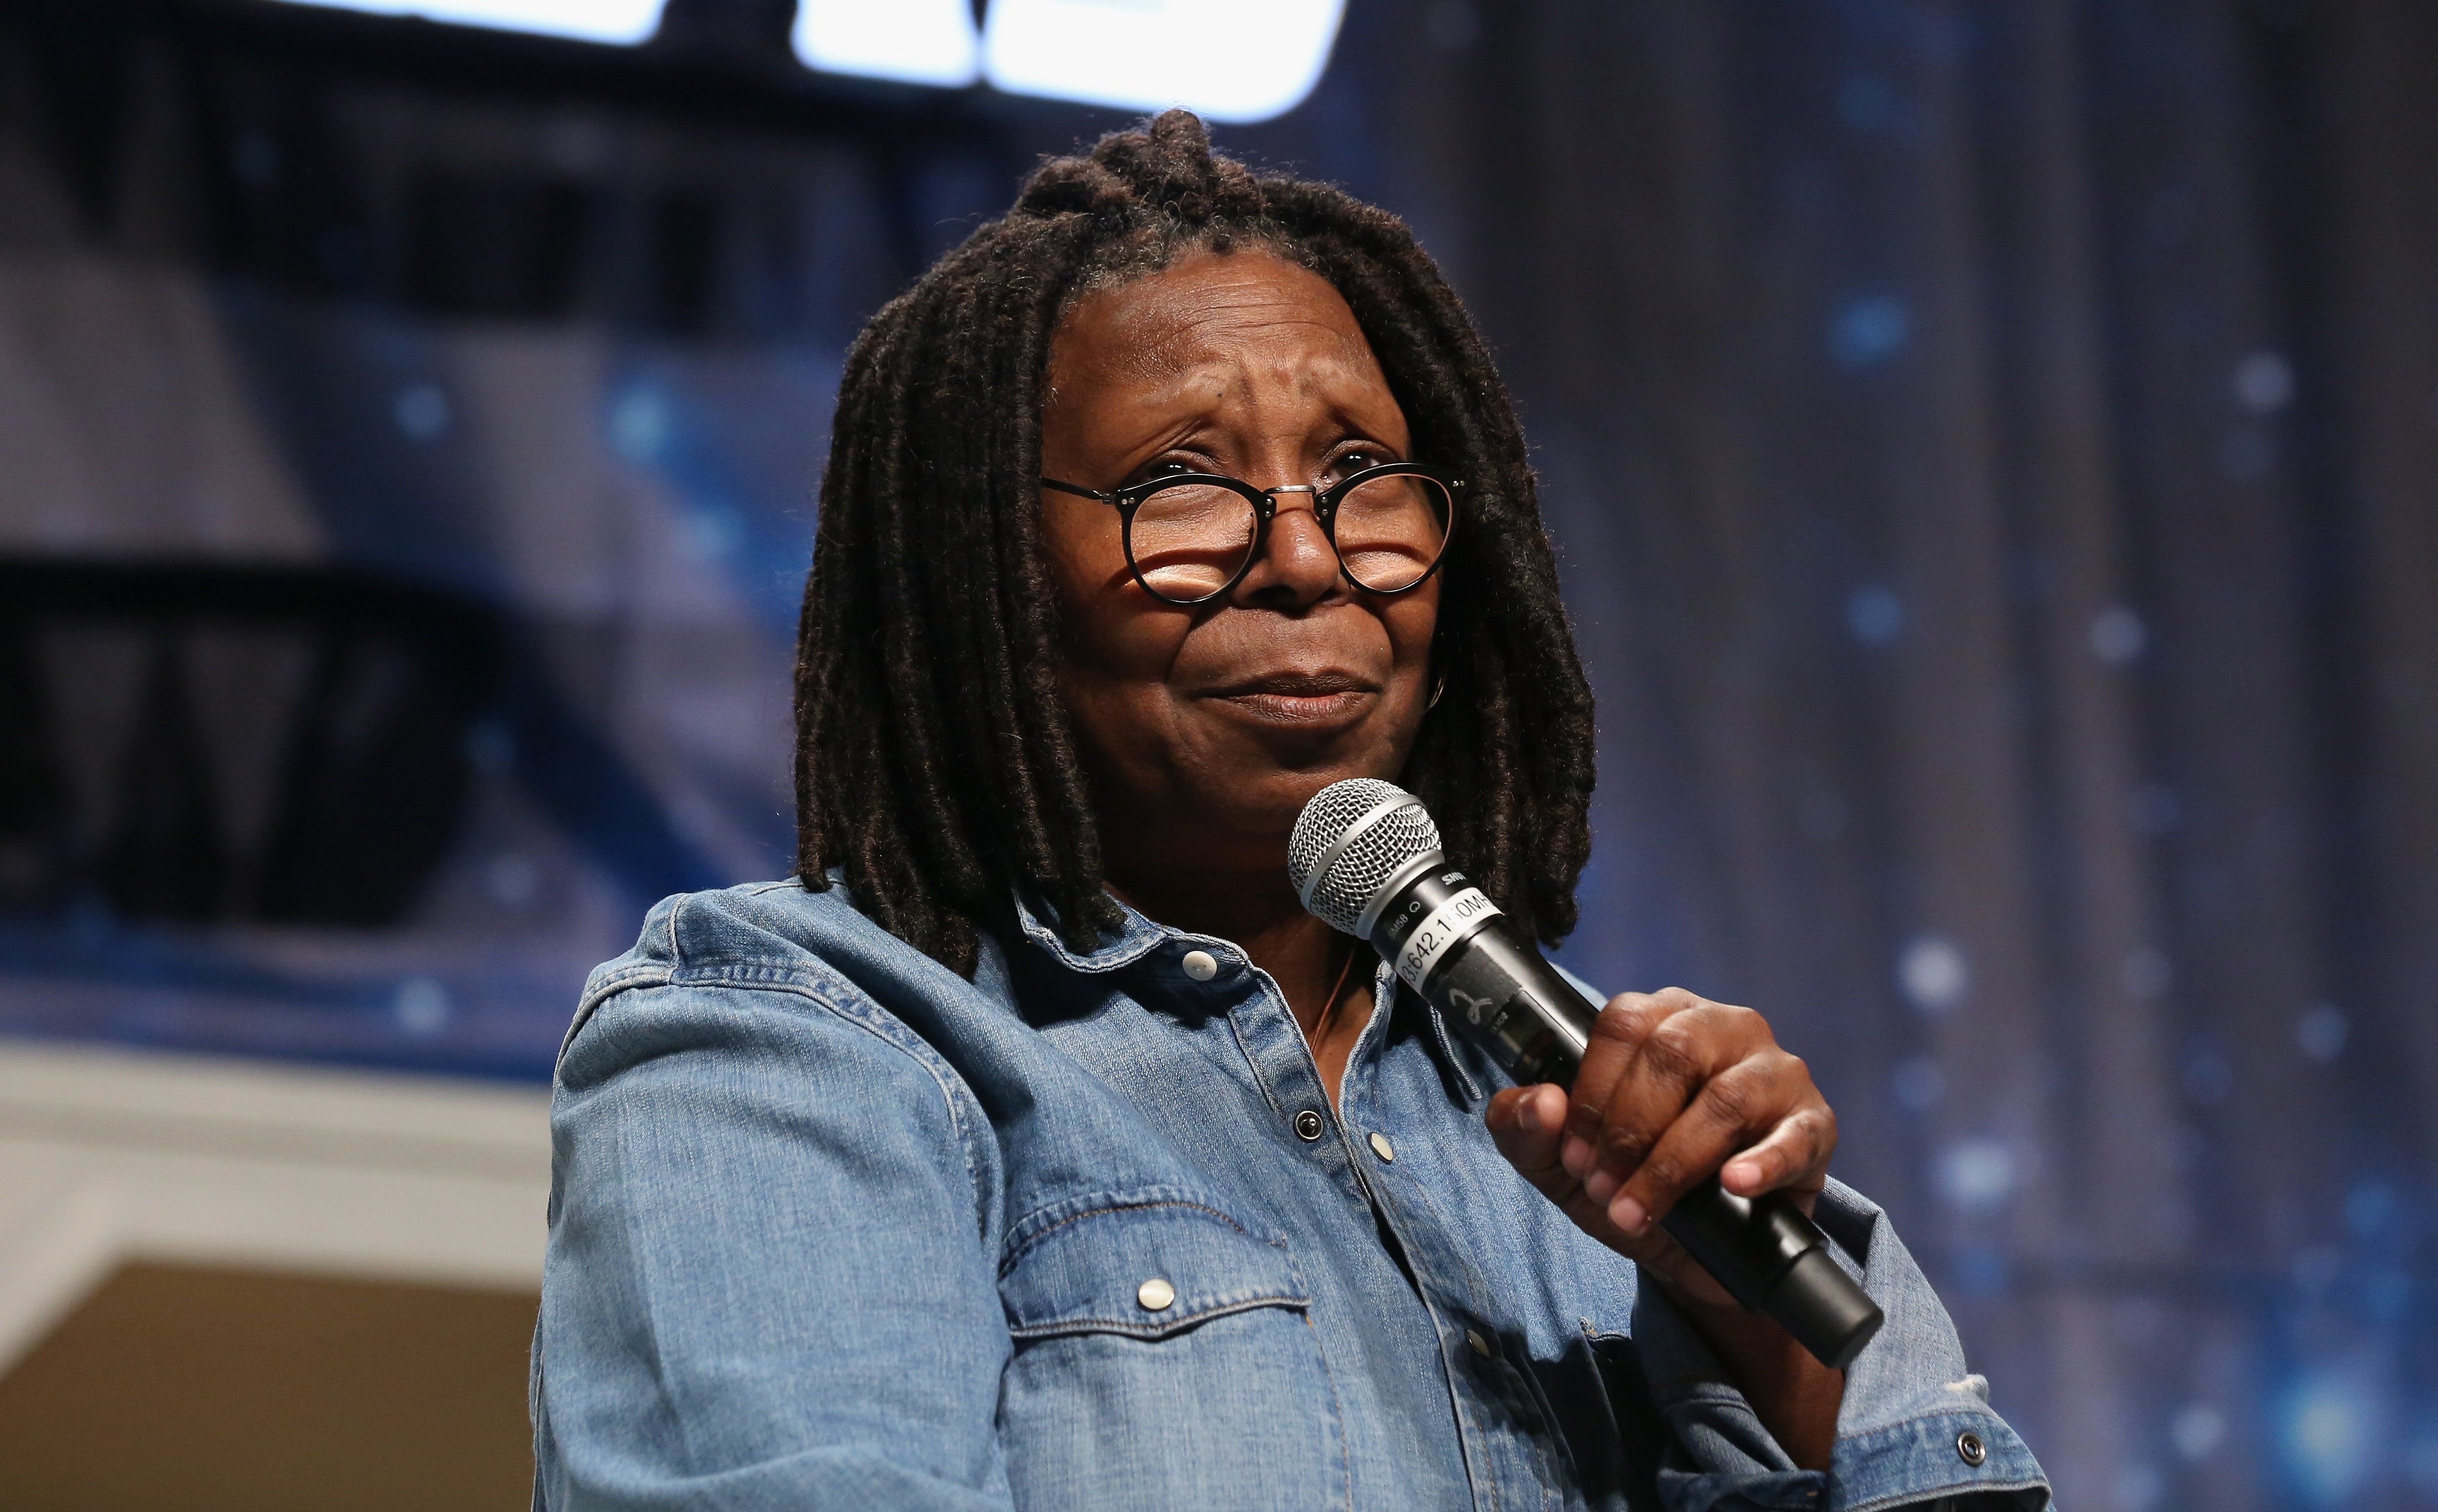 Whoopi Goldberg at the 15th annual official Star Trek convention on Aug. 4, 2016 in Las Vegas, Nevada | Photo: Getty Images